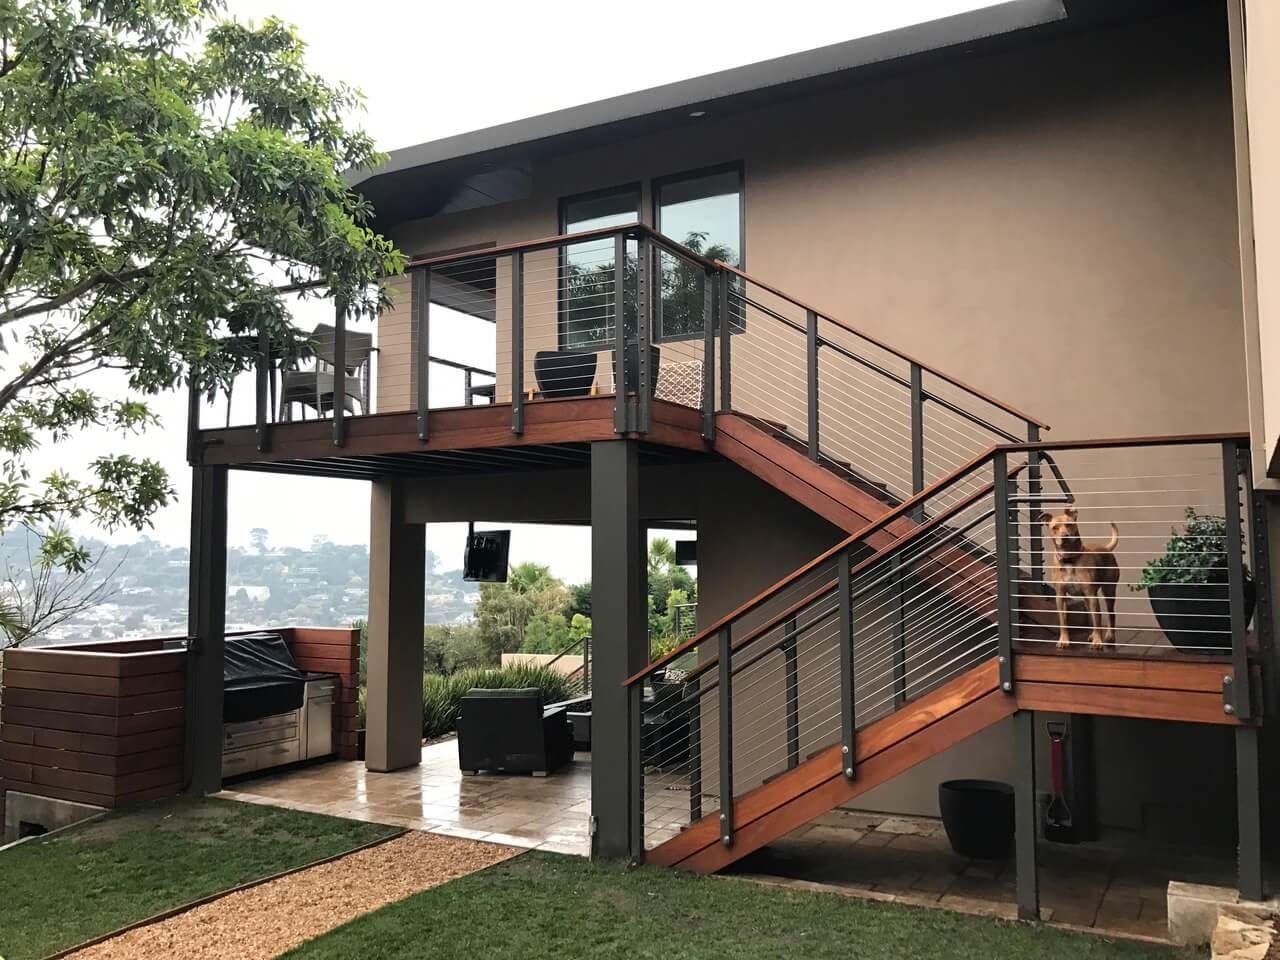 Sustainably harvested tropical wood deck and stairs with cable railing